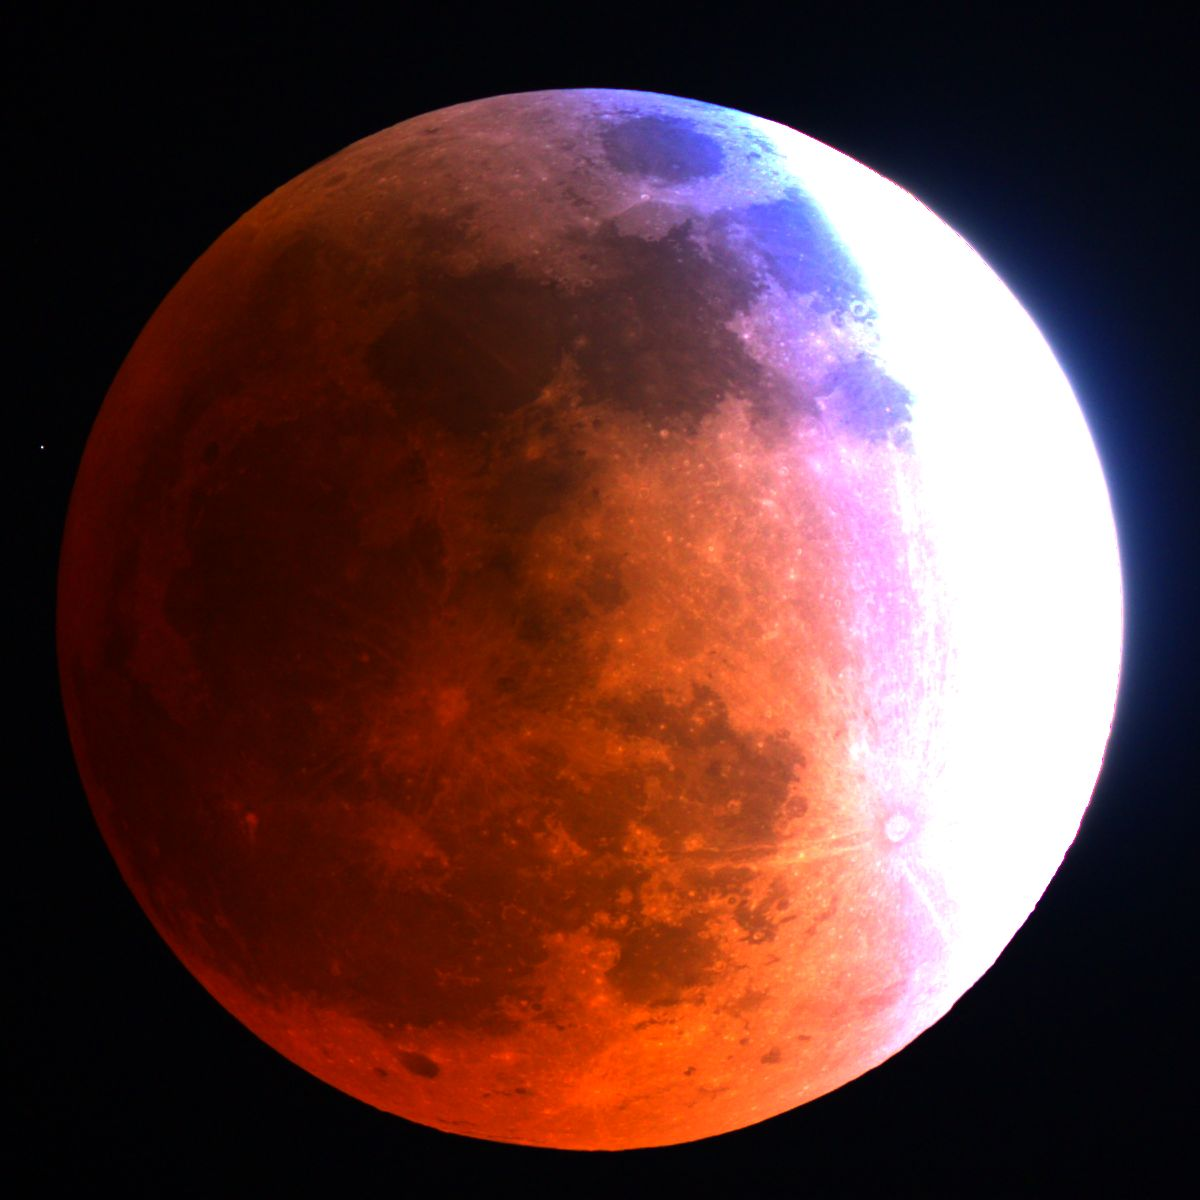 Blood Moon: Total Lunar Eclipse of 2014, Mt. Lemmon